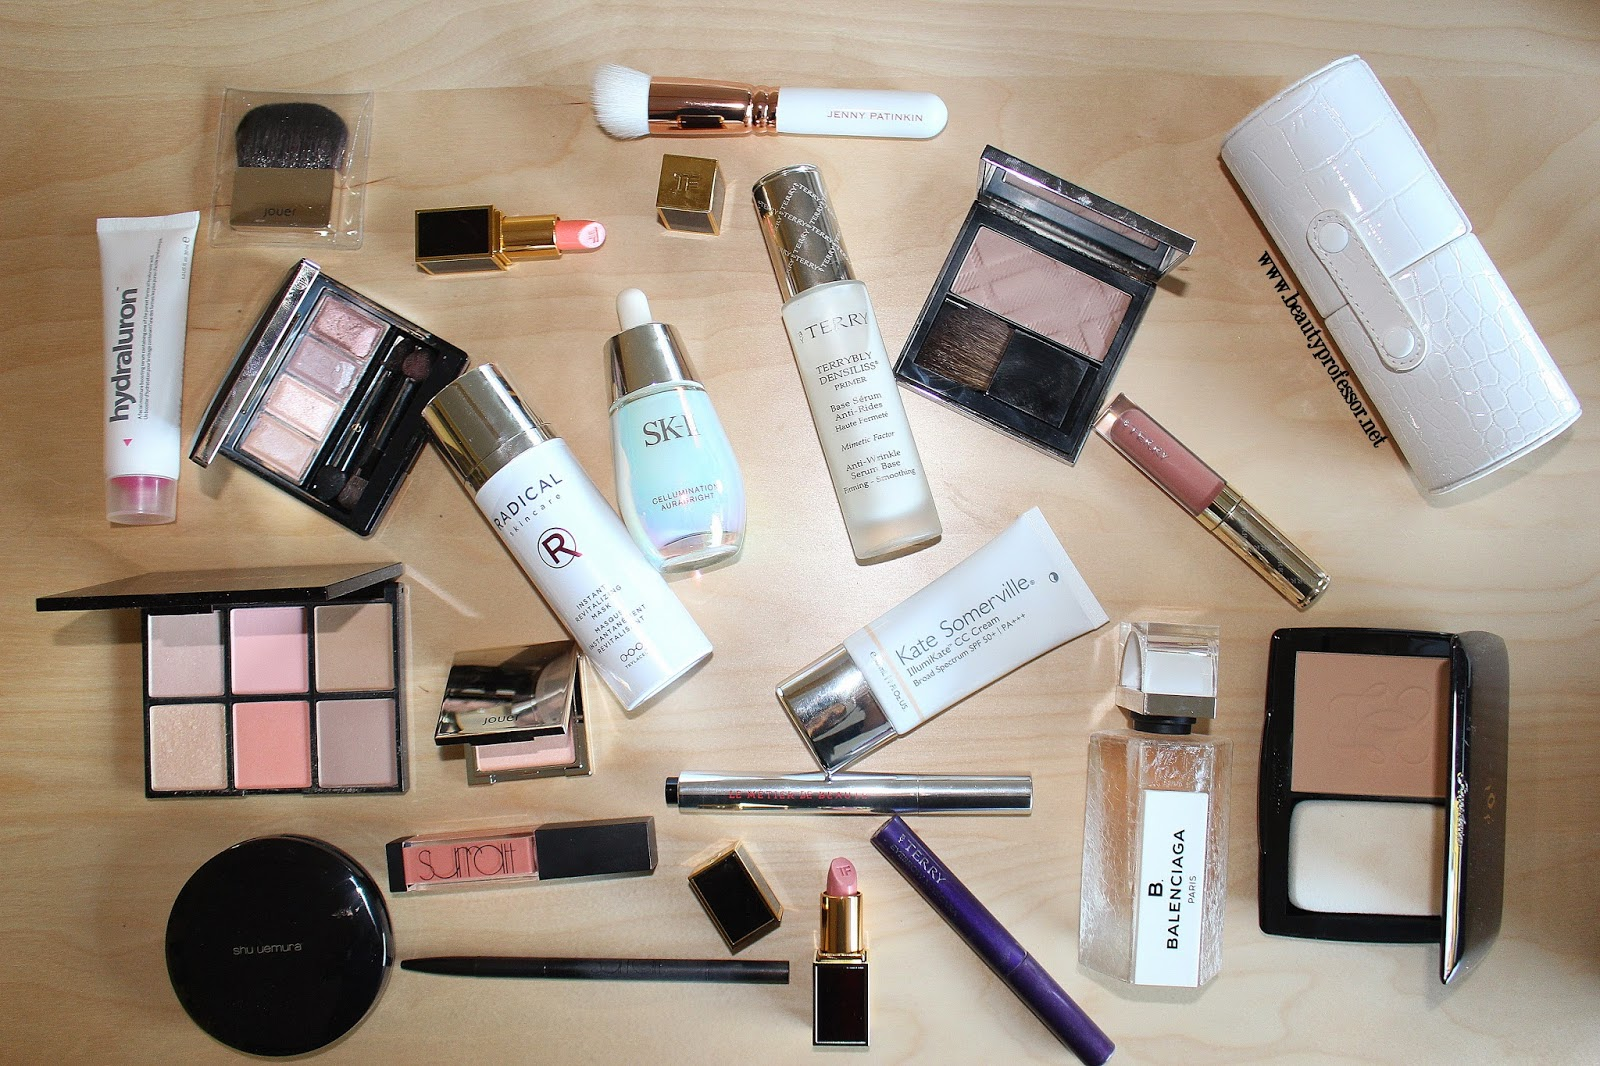 bba931c202c5 Video: 20 Products on Heavy Rotation--November/December 2014 Edition ...